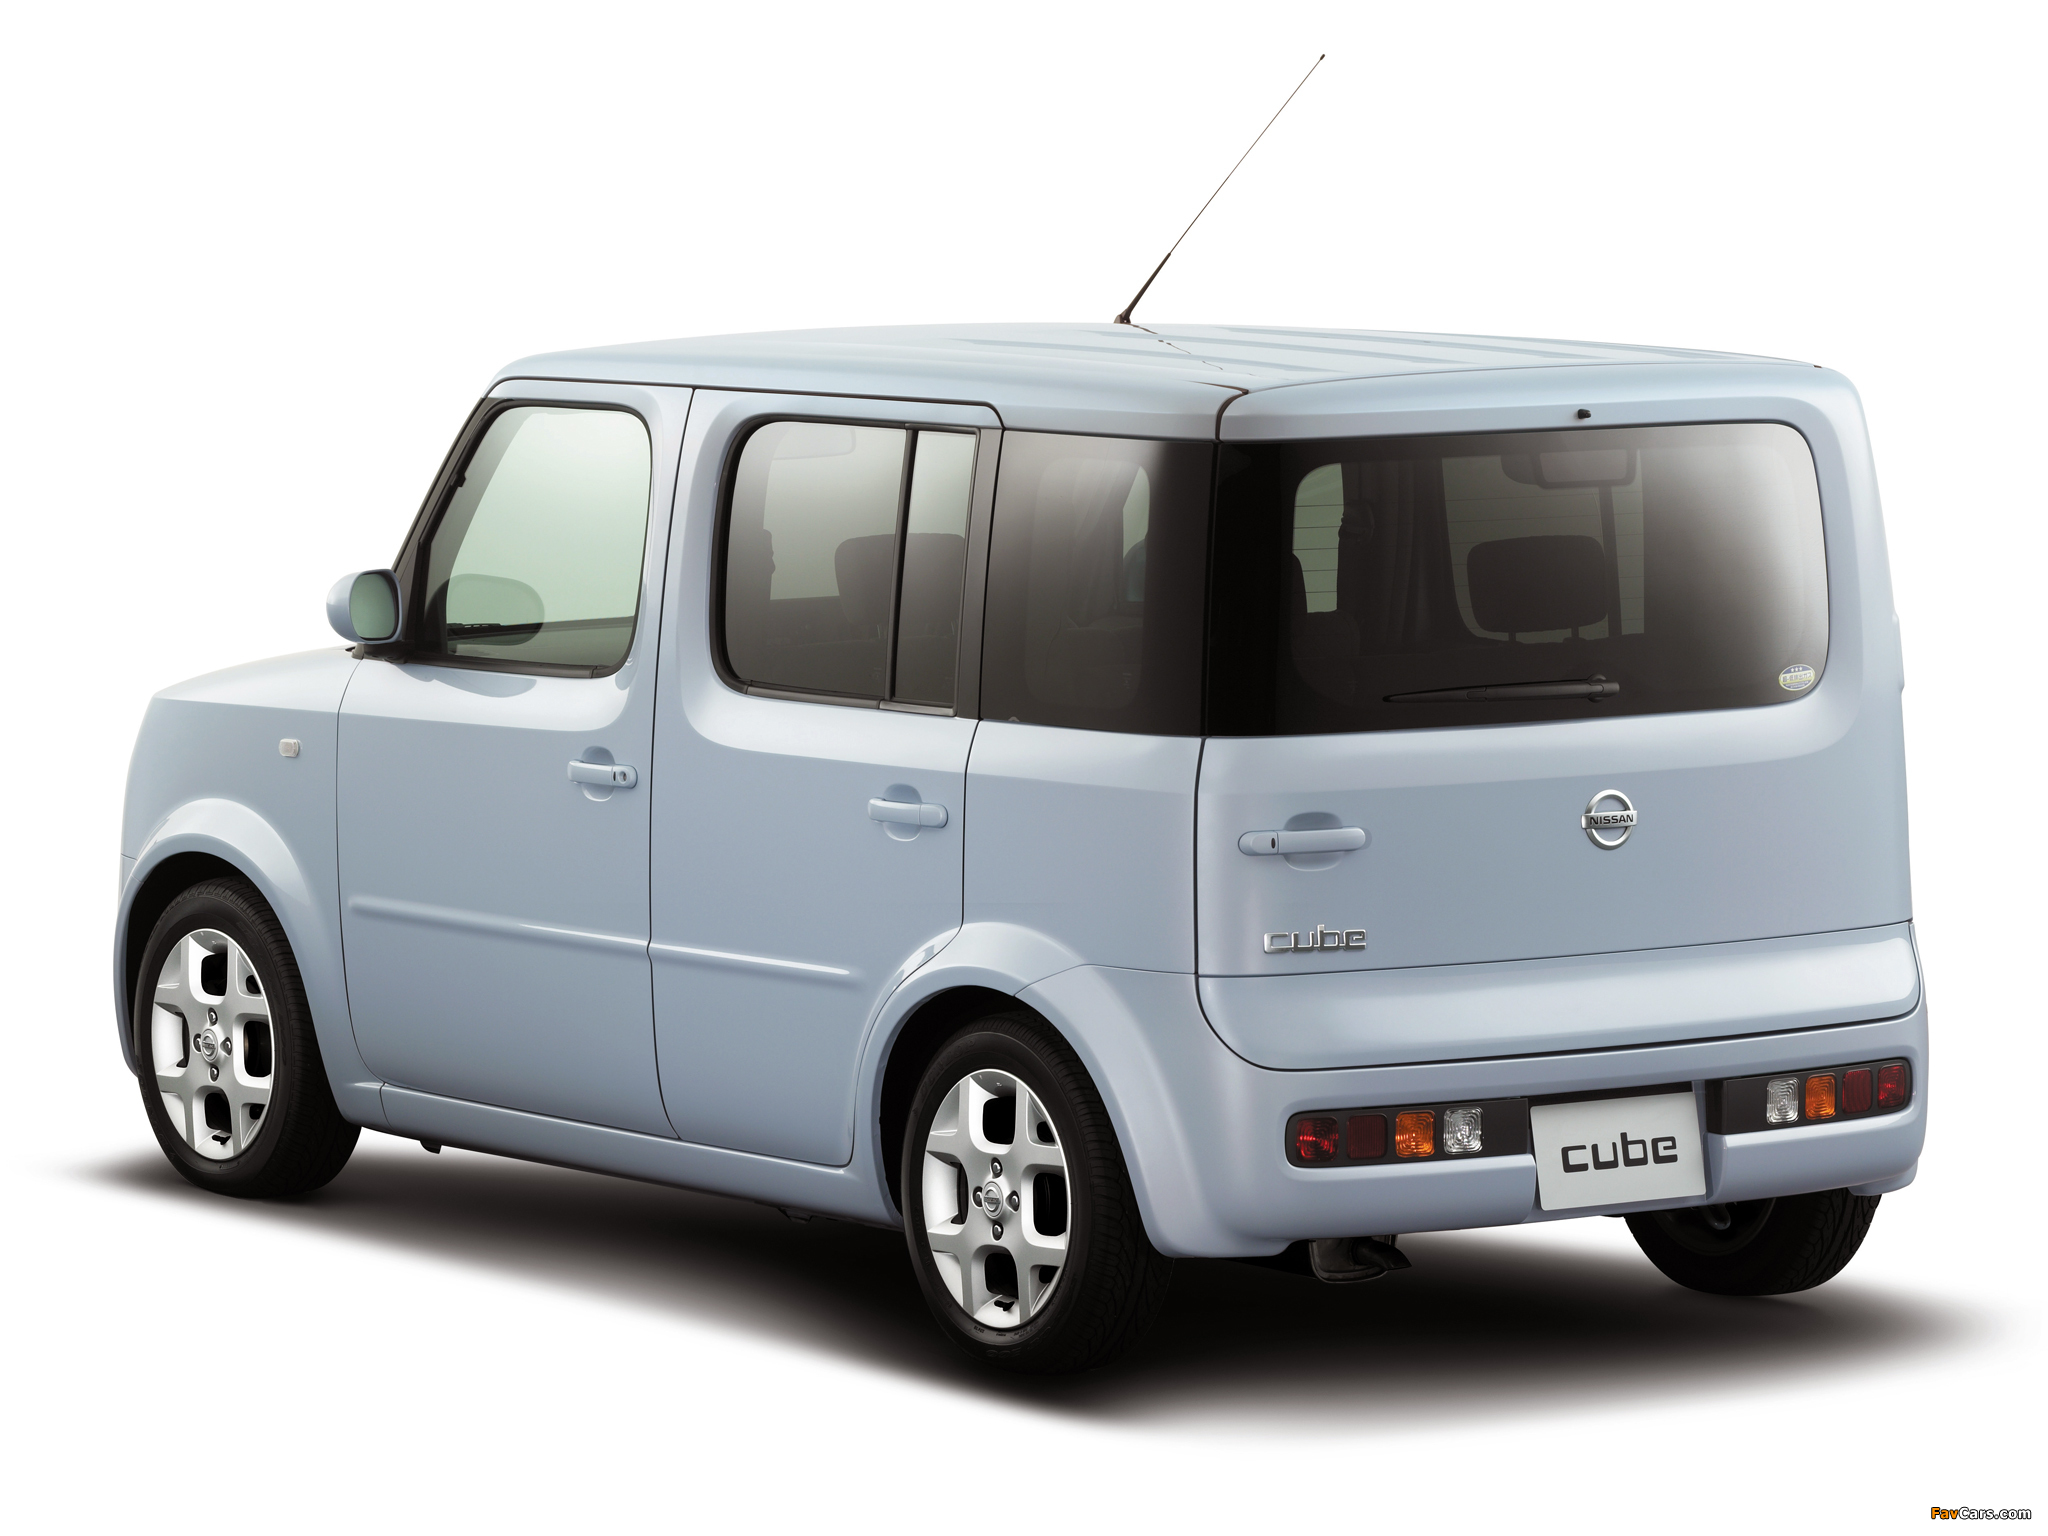 Nissan Cube - Overview - CarGurus  |2002 Nissan Cube